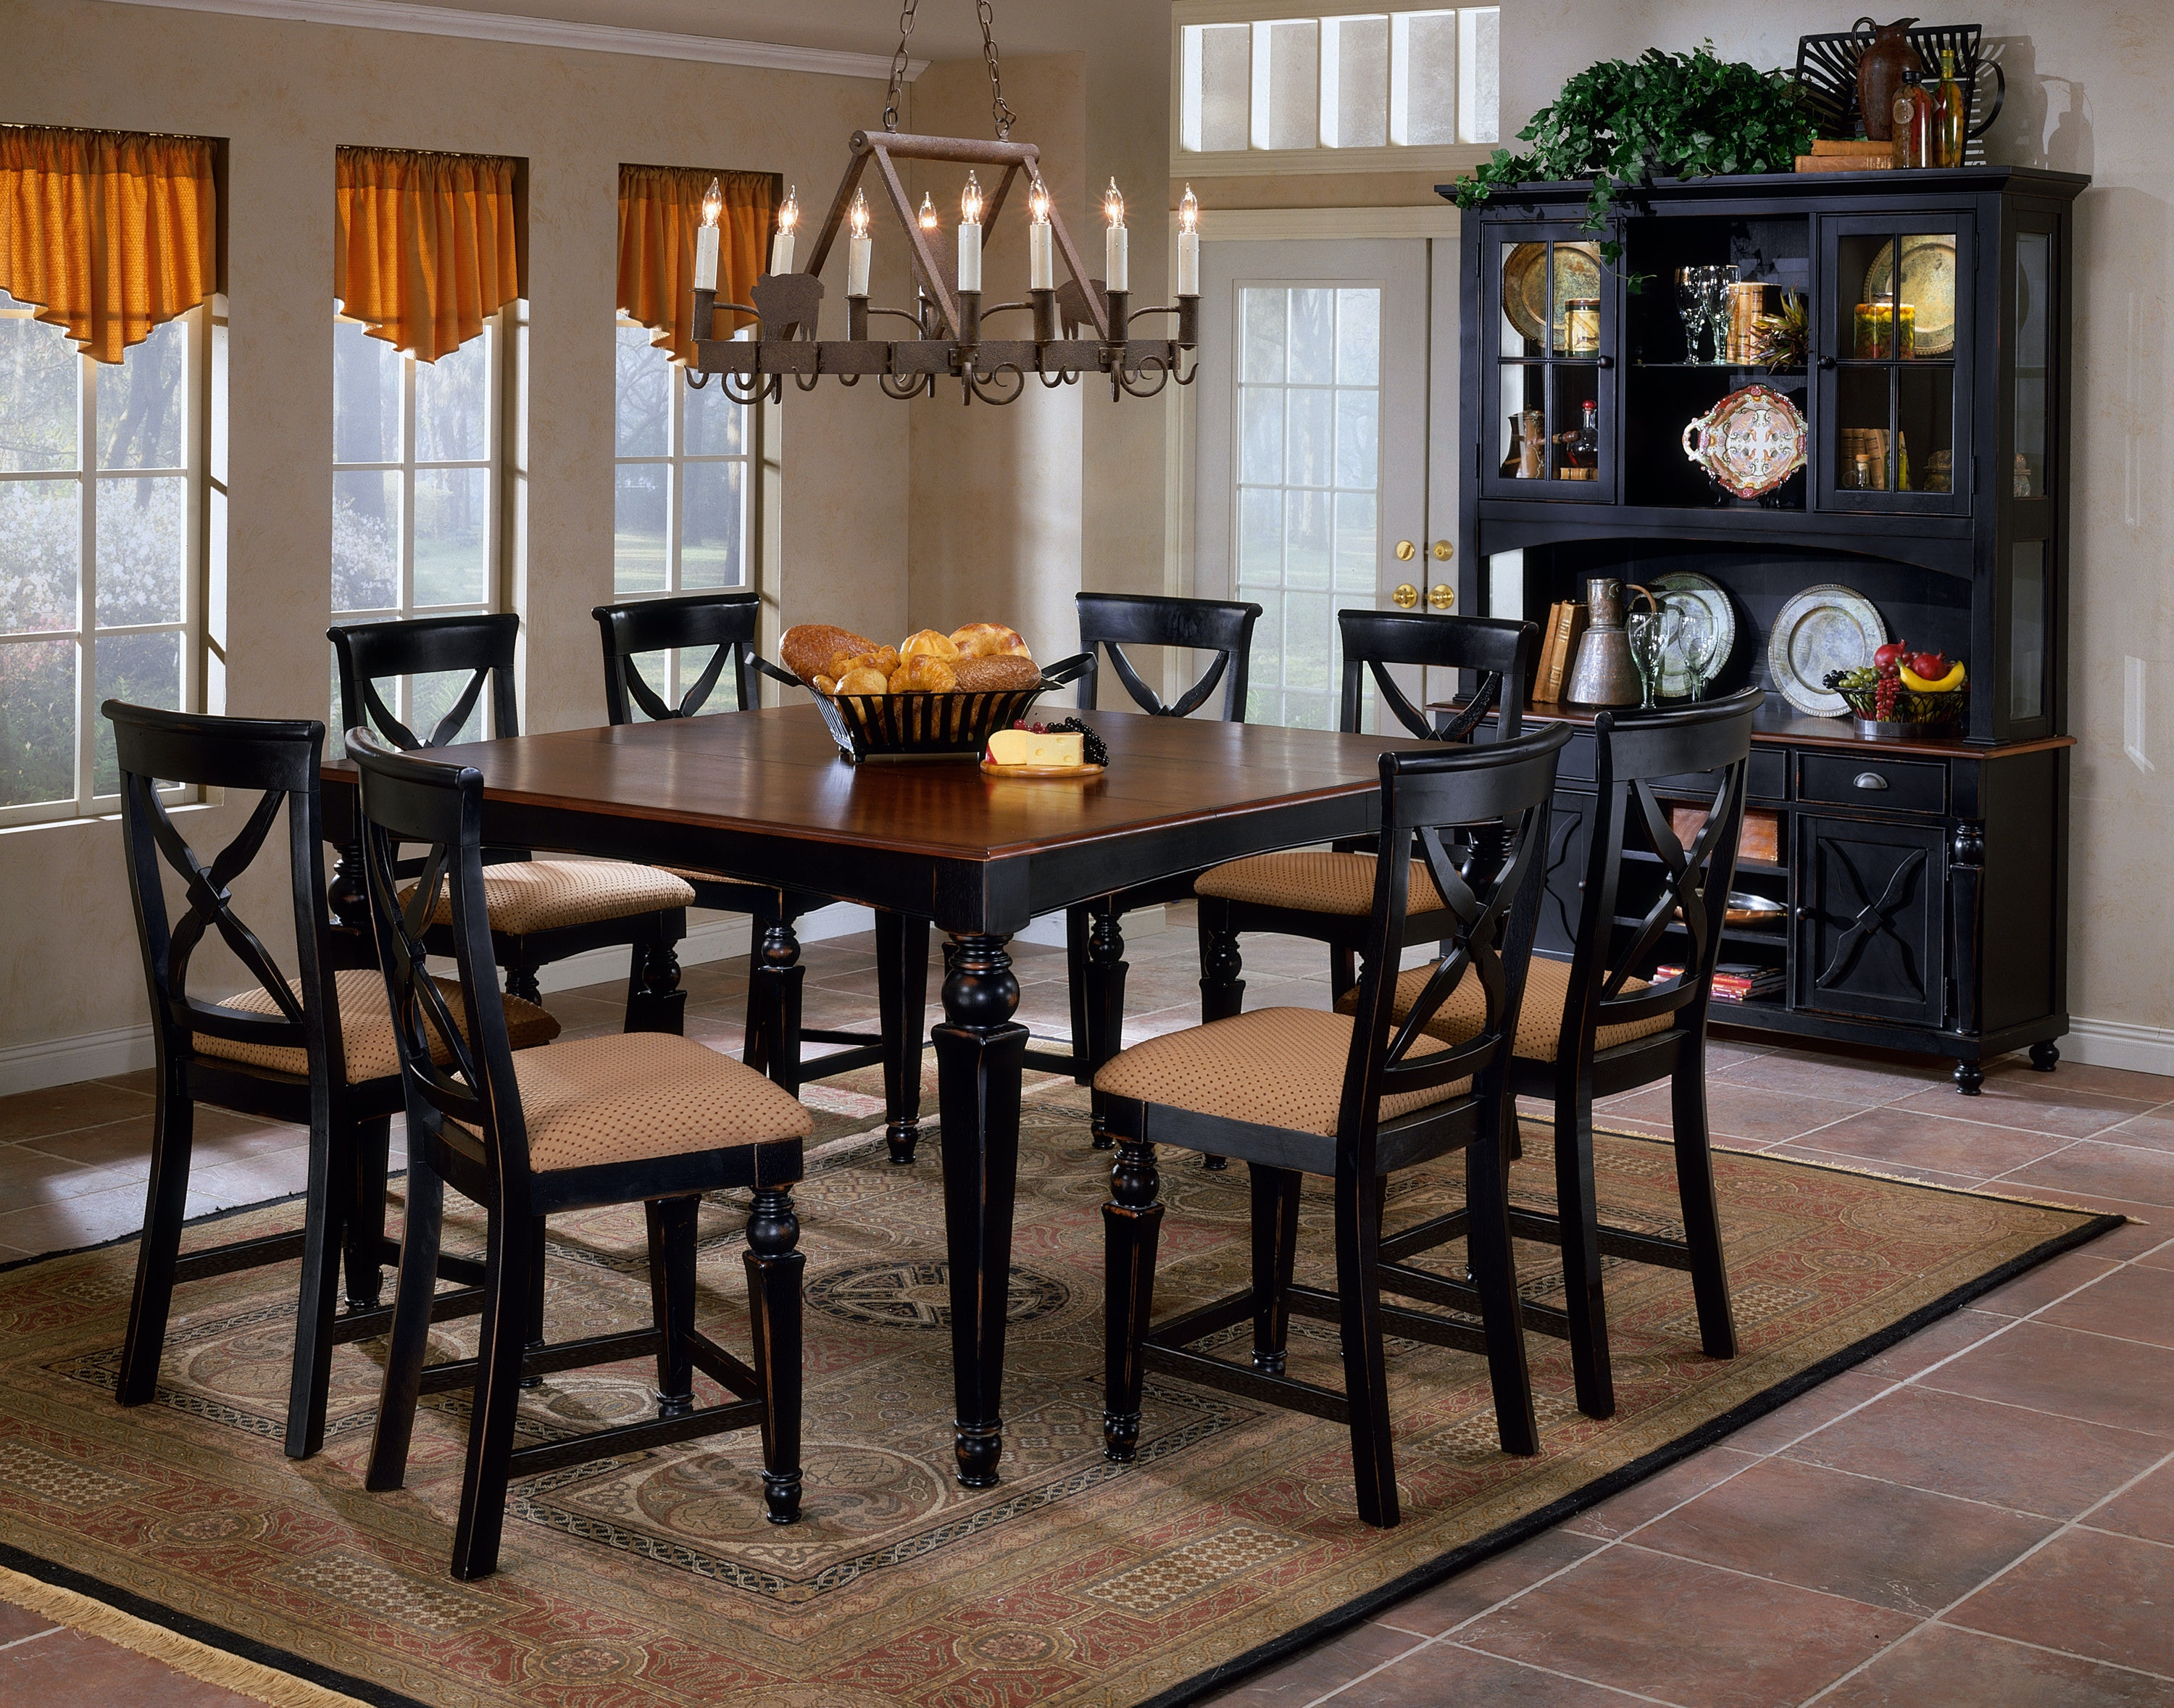 Hillsdale Furniture Northern Heights Counter Height Dining Table 4439-835W available to order at Flemington Department Store & Hillsdale Furniture Bar and Game Room Northern Heights 9-Piece ...